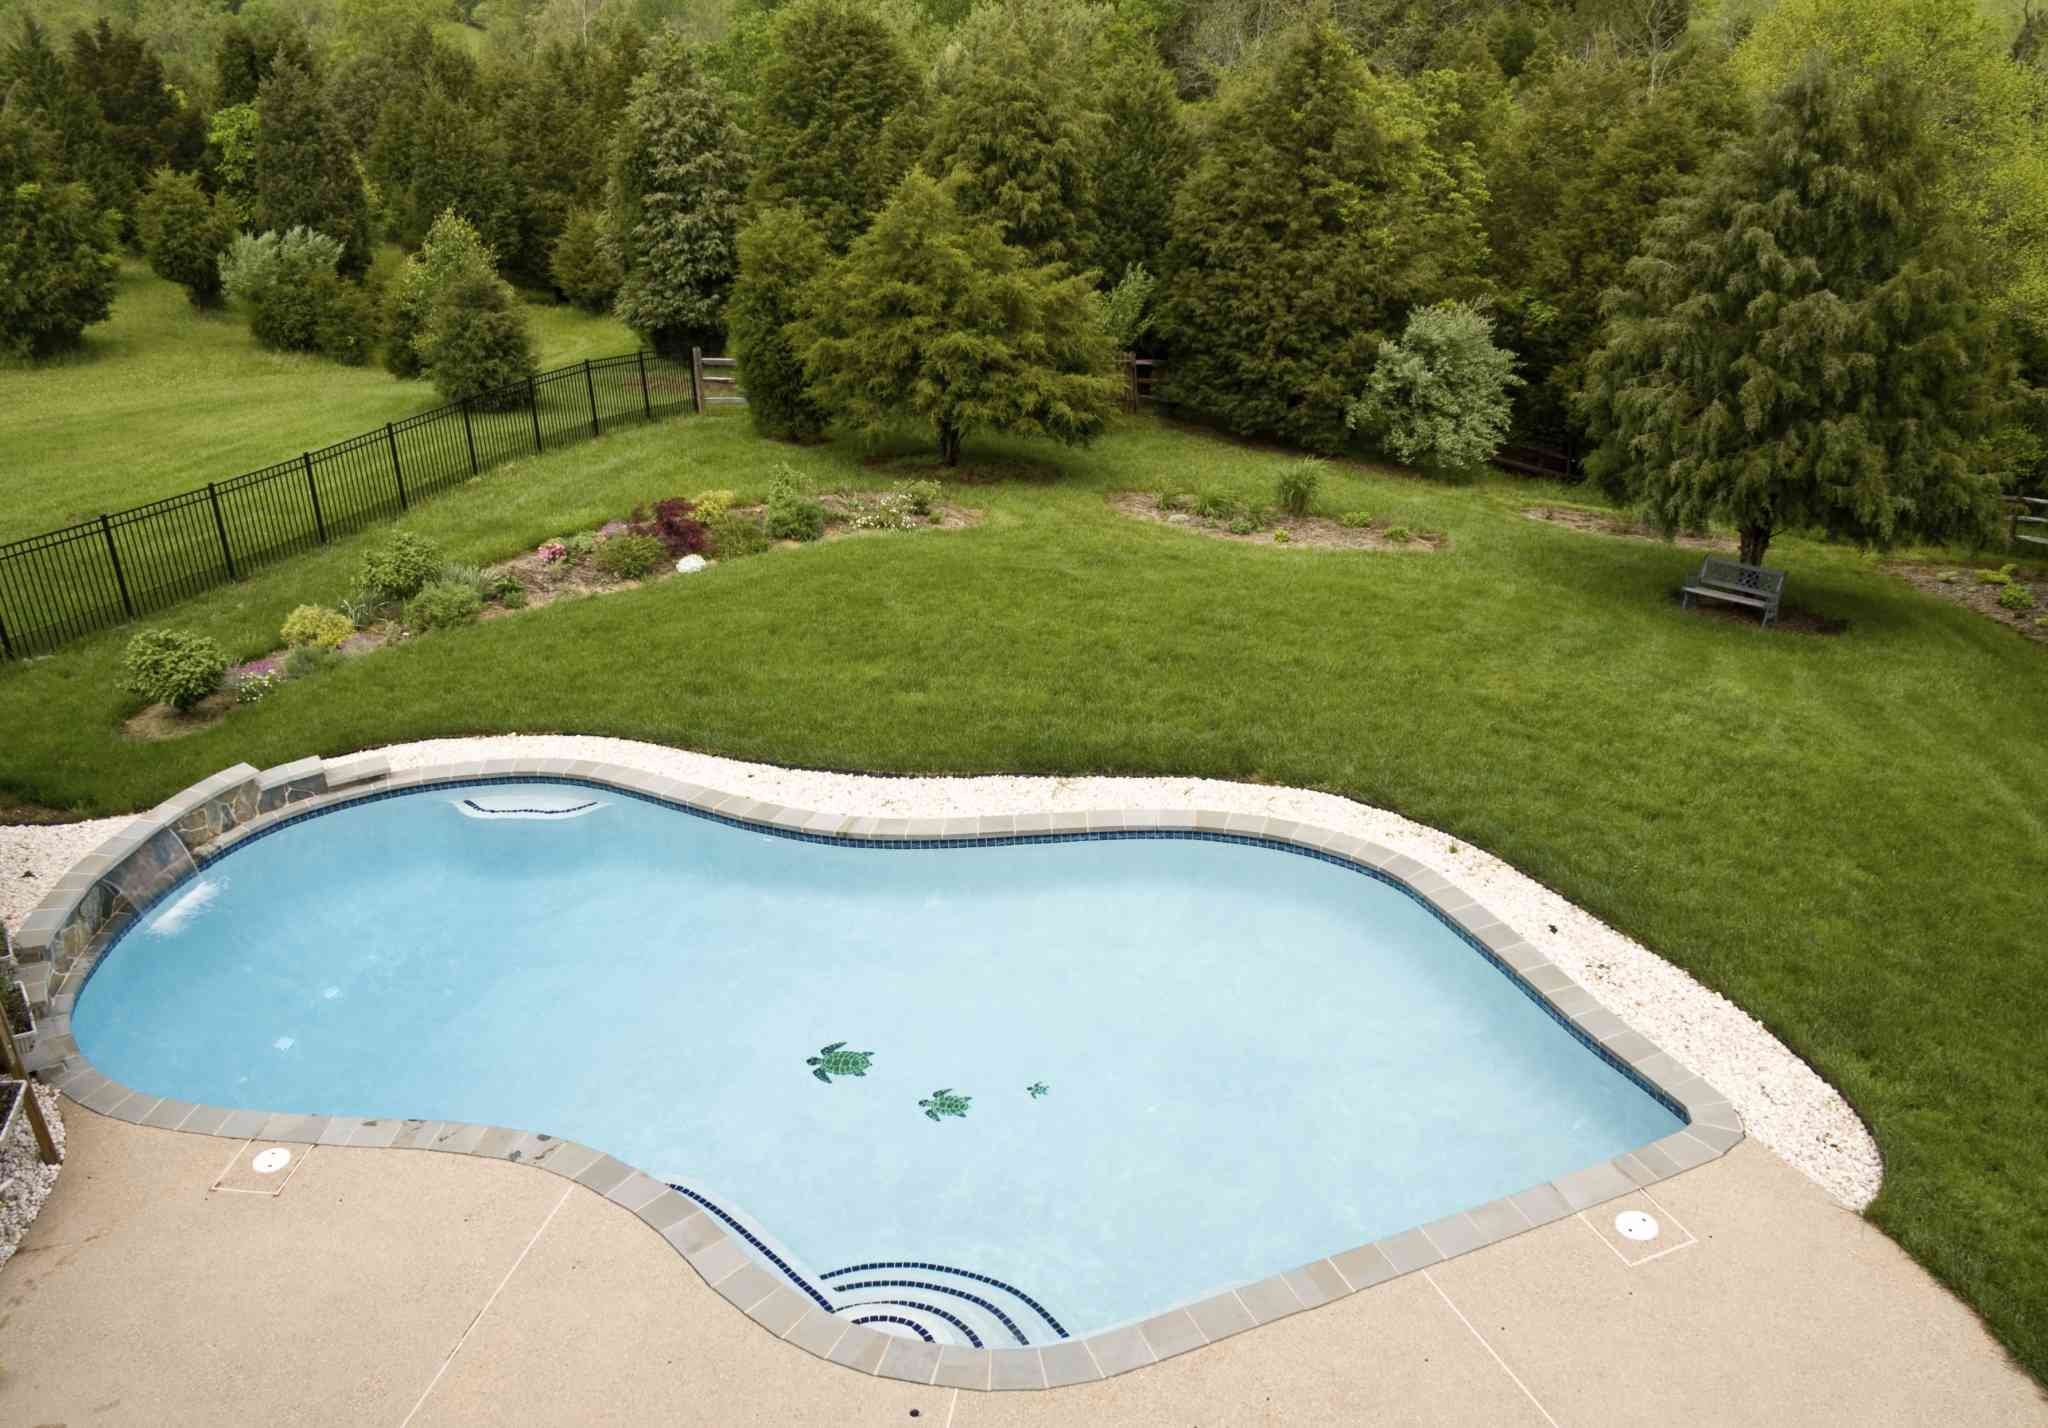 How To Make Your Swimming Pool More Energy Efficient - HFS ...